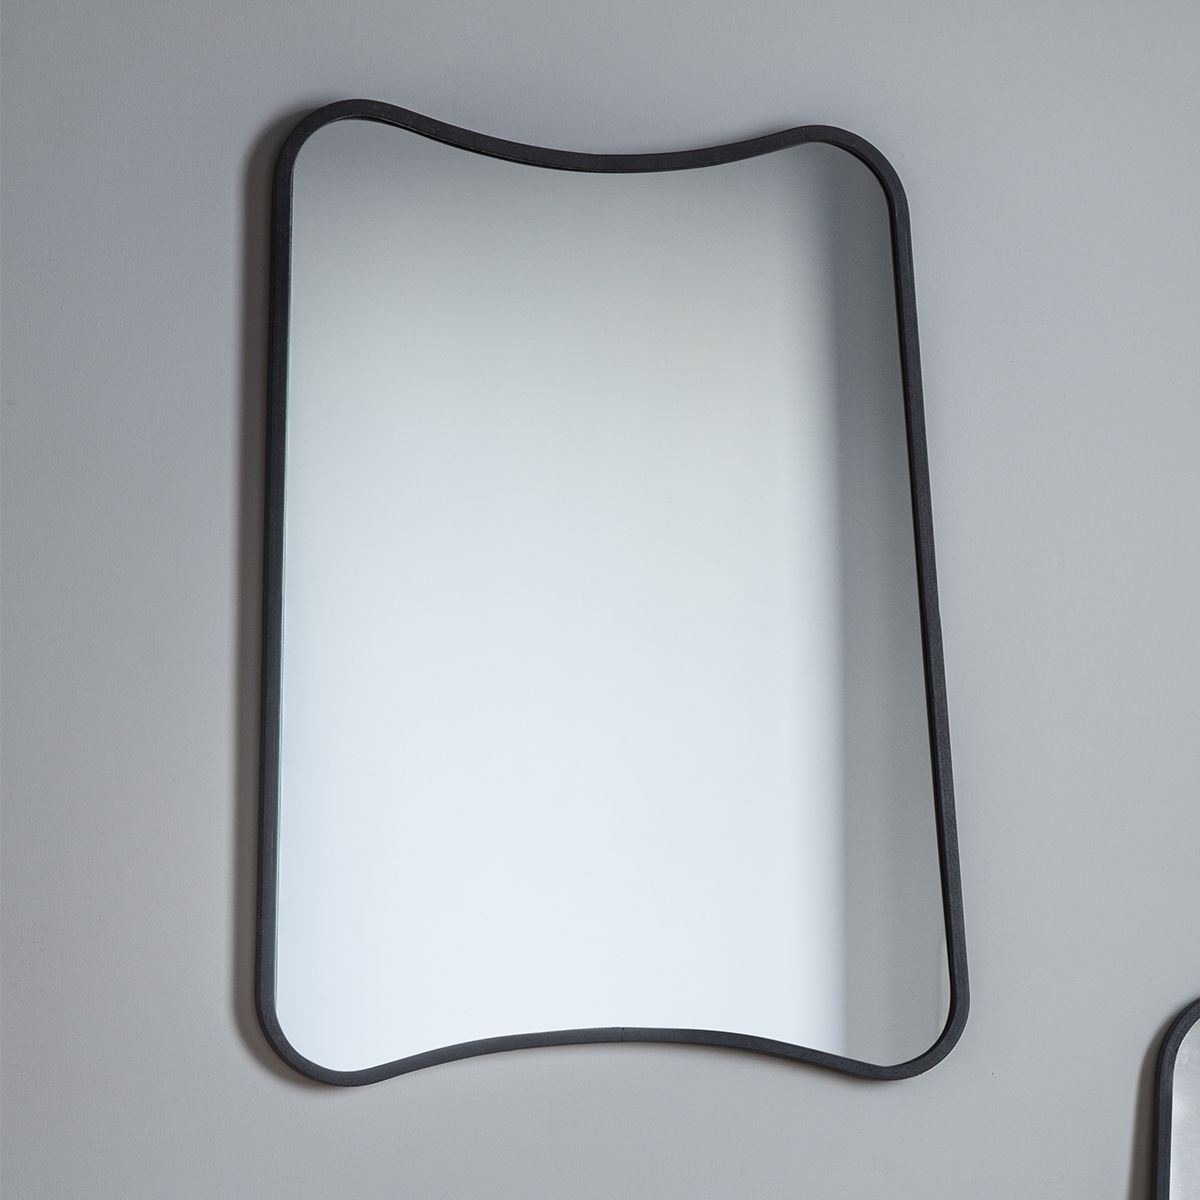 Curved Edge Black Rectangle Wall Mirror 80 X 60cm Throughout Most Current Black Rectangle Wall Mirrors (View 10 of 20)